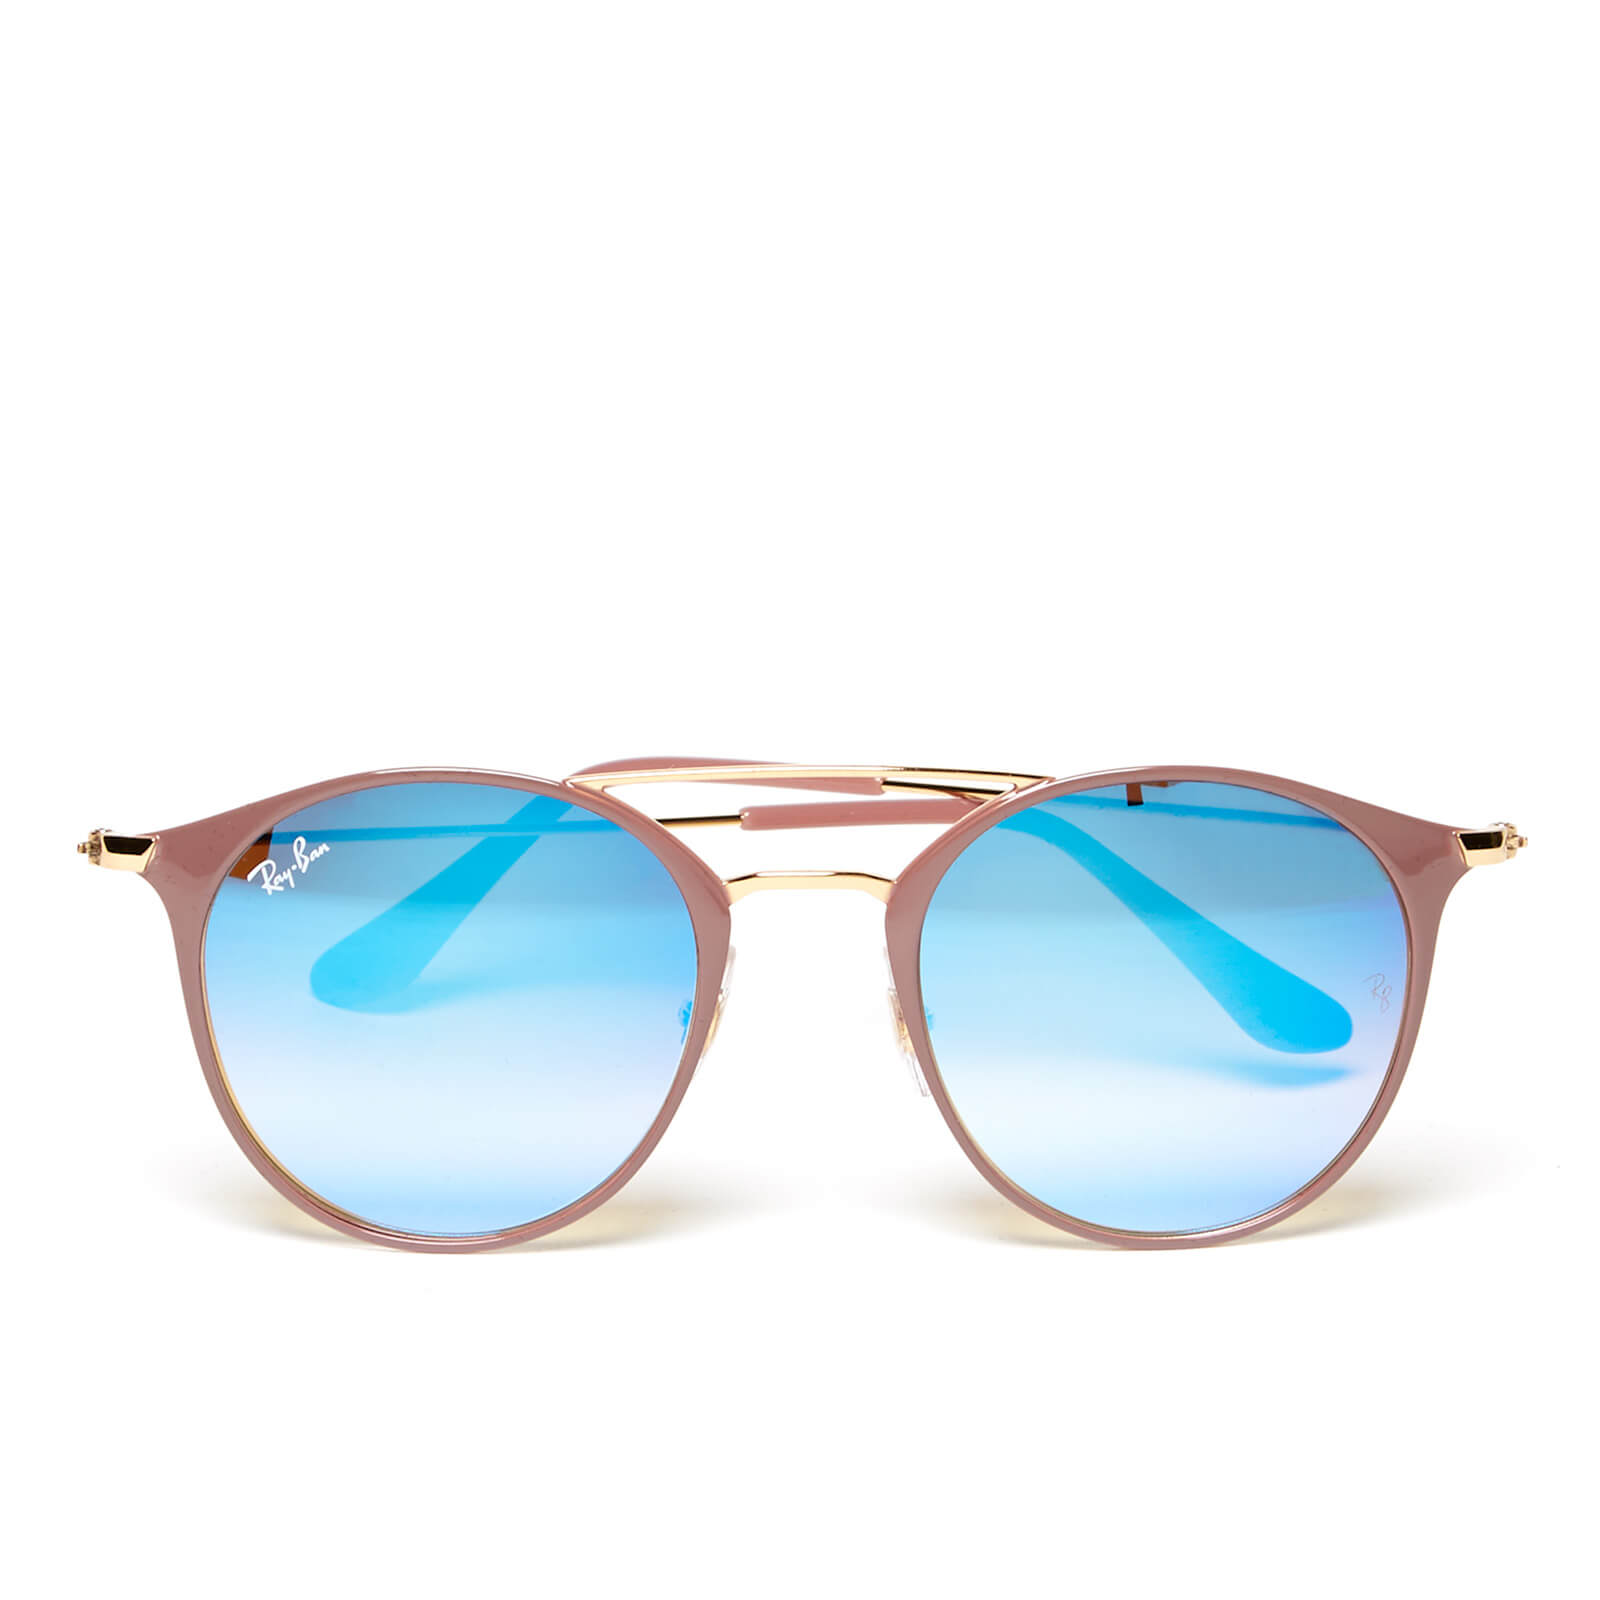 43c3dafee30c Ray-Ban Round Metal Rose Frame Sunglasses - Gold Top Beige Blue Flash -  Free UK Delivery over £50